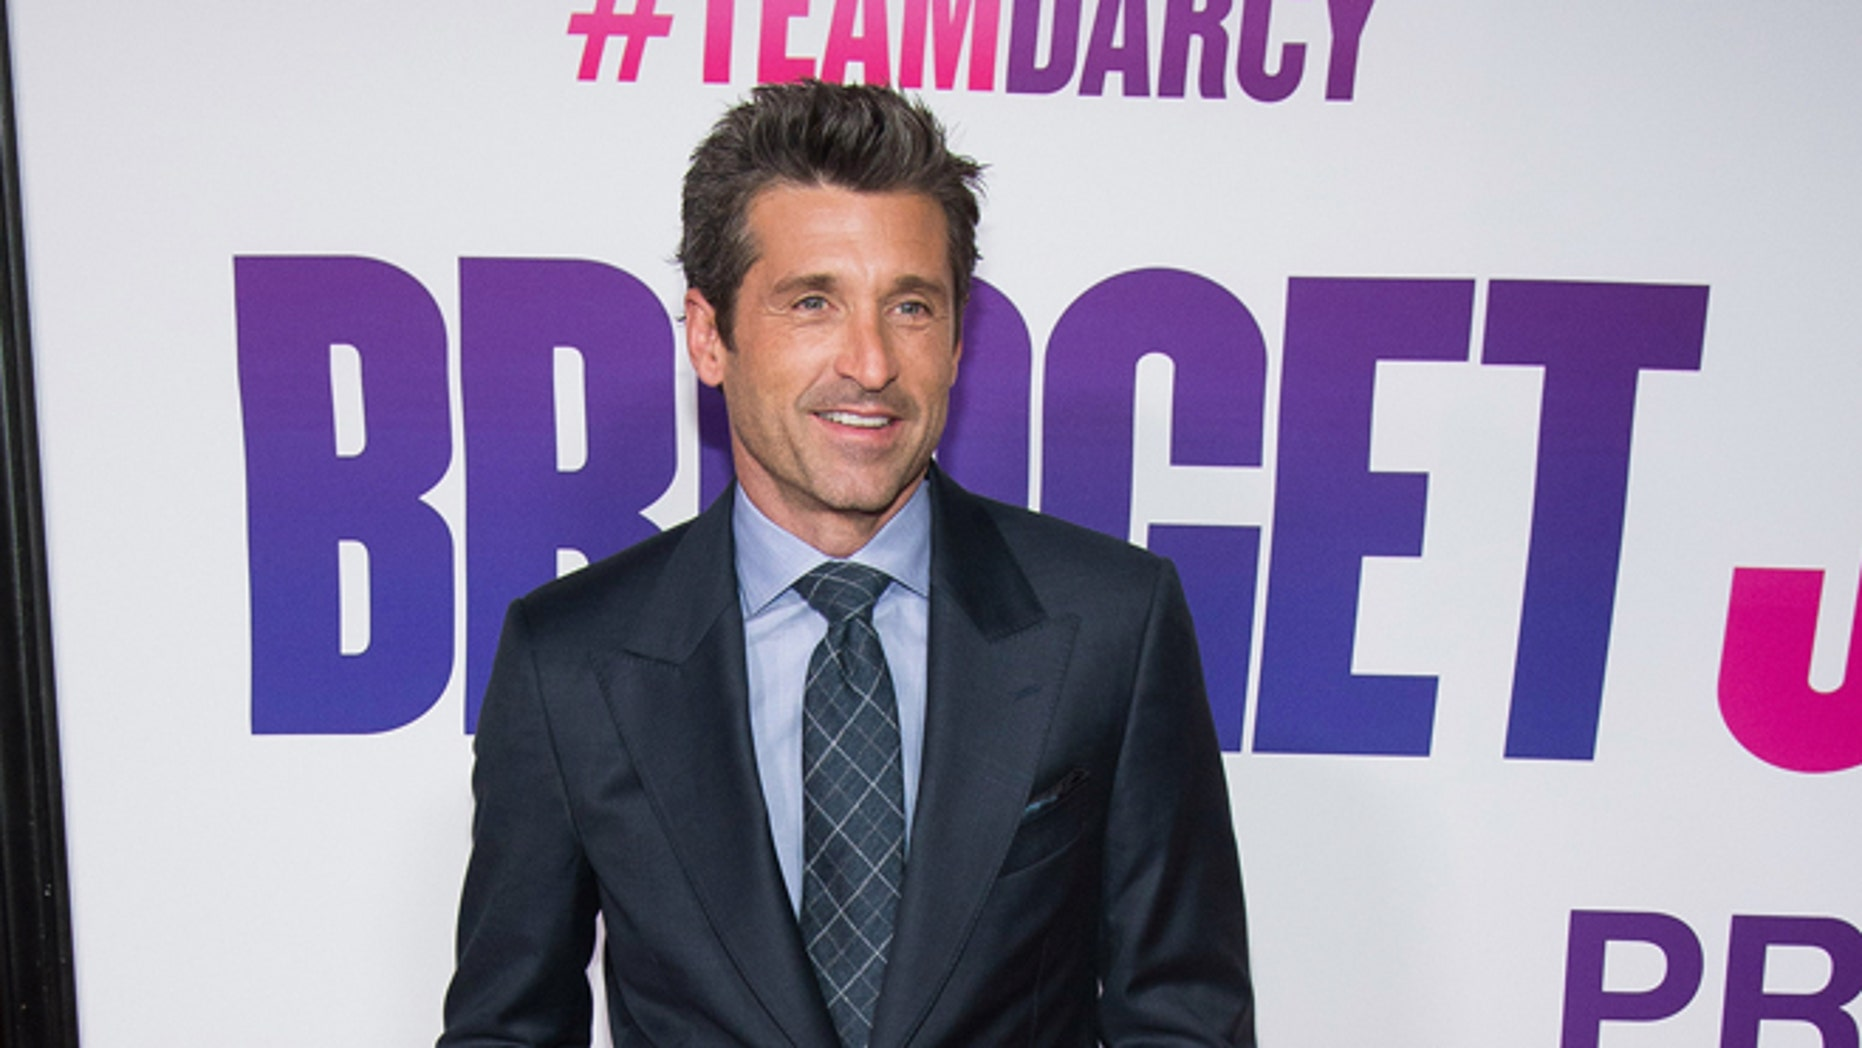 Patrick Dempsey Returns To Maine For Cancer Fundraiser Fox News